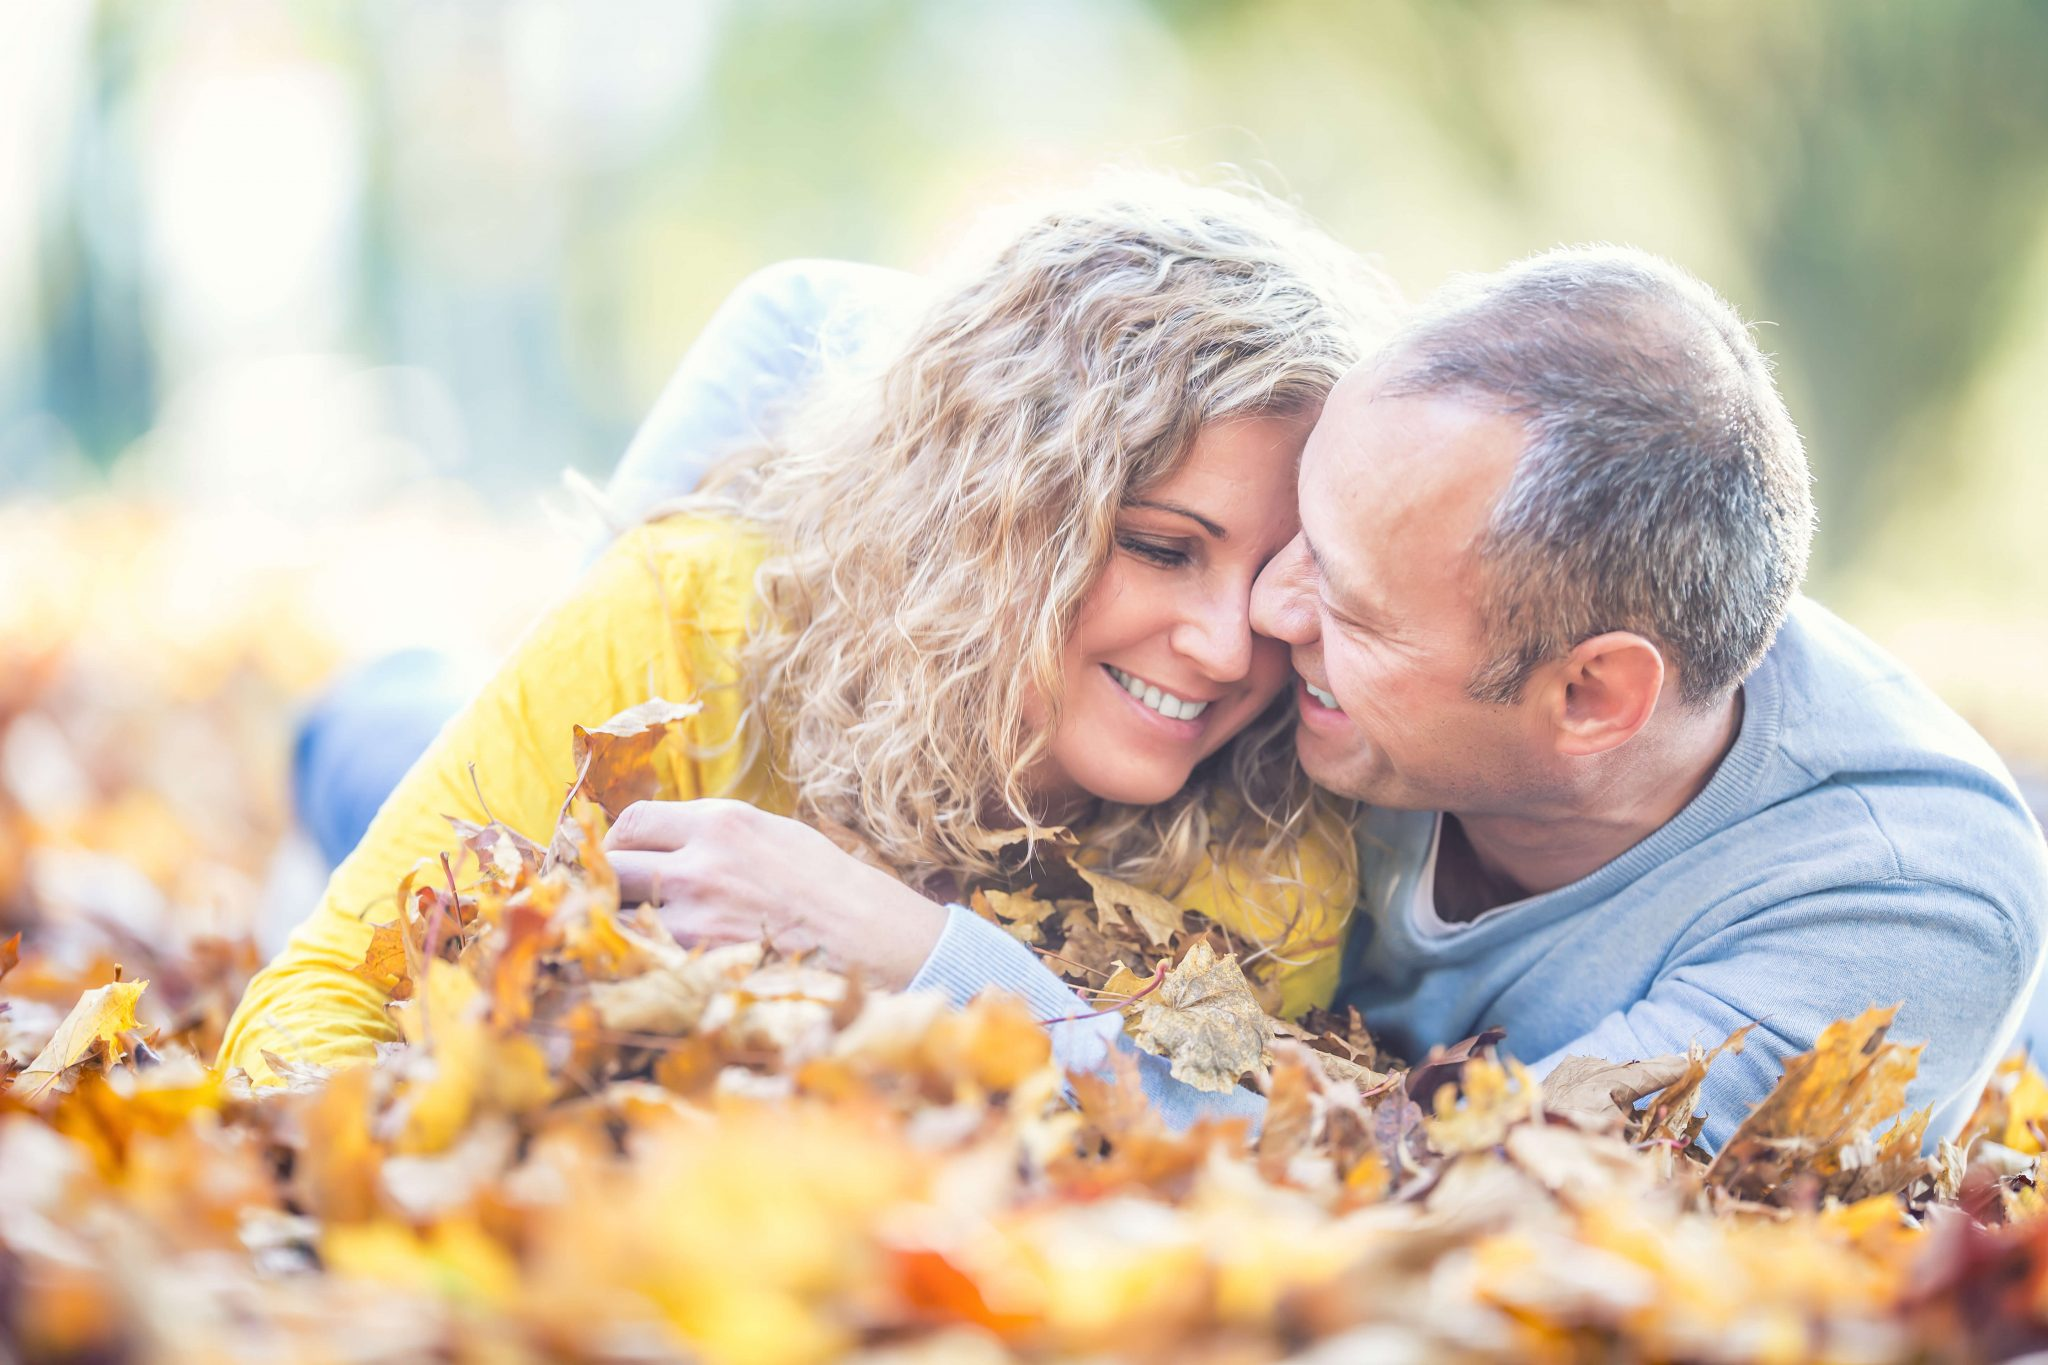 Fall back in love with your partner photo